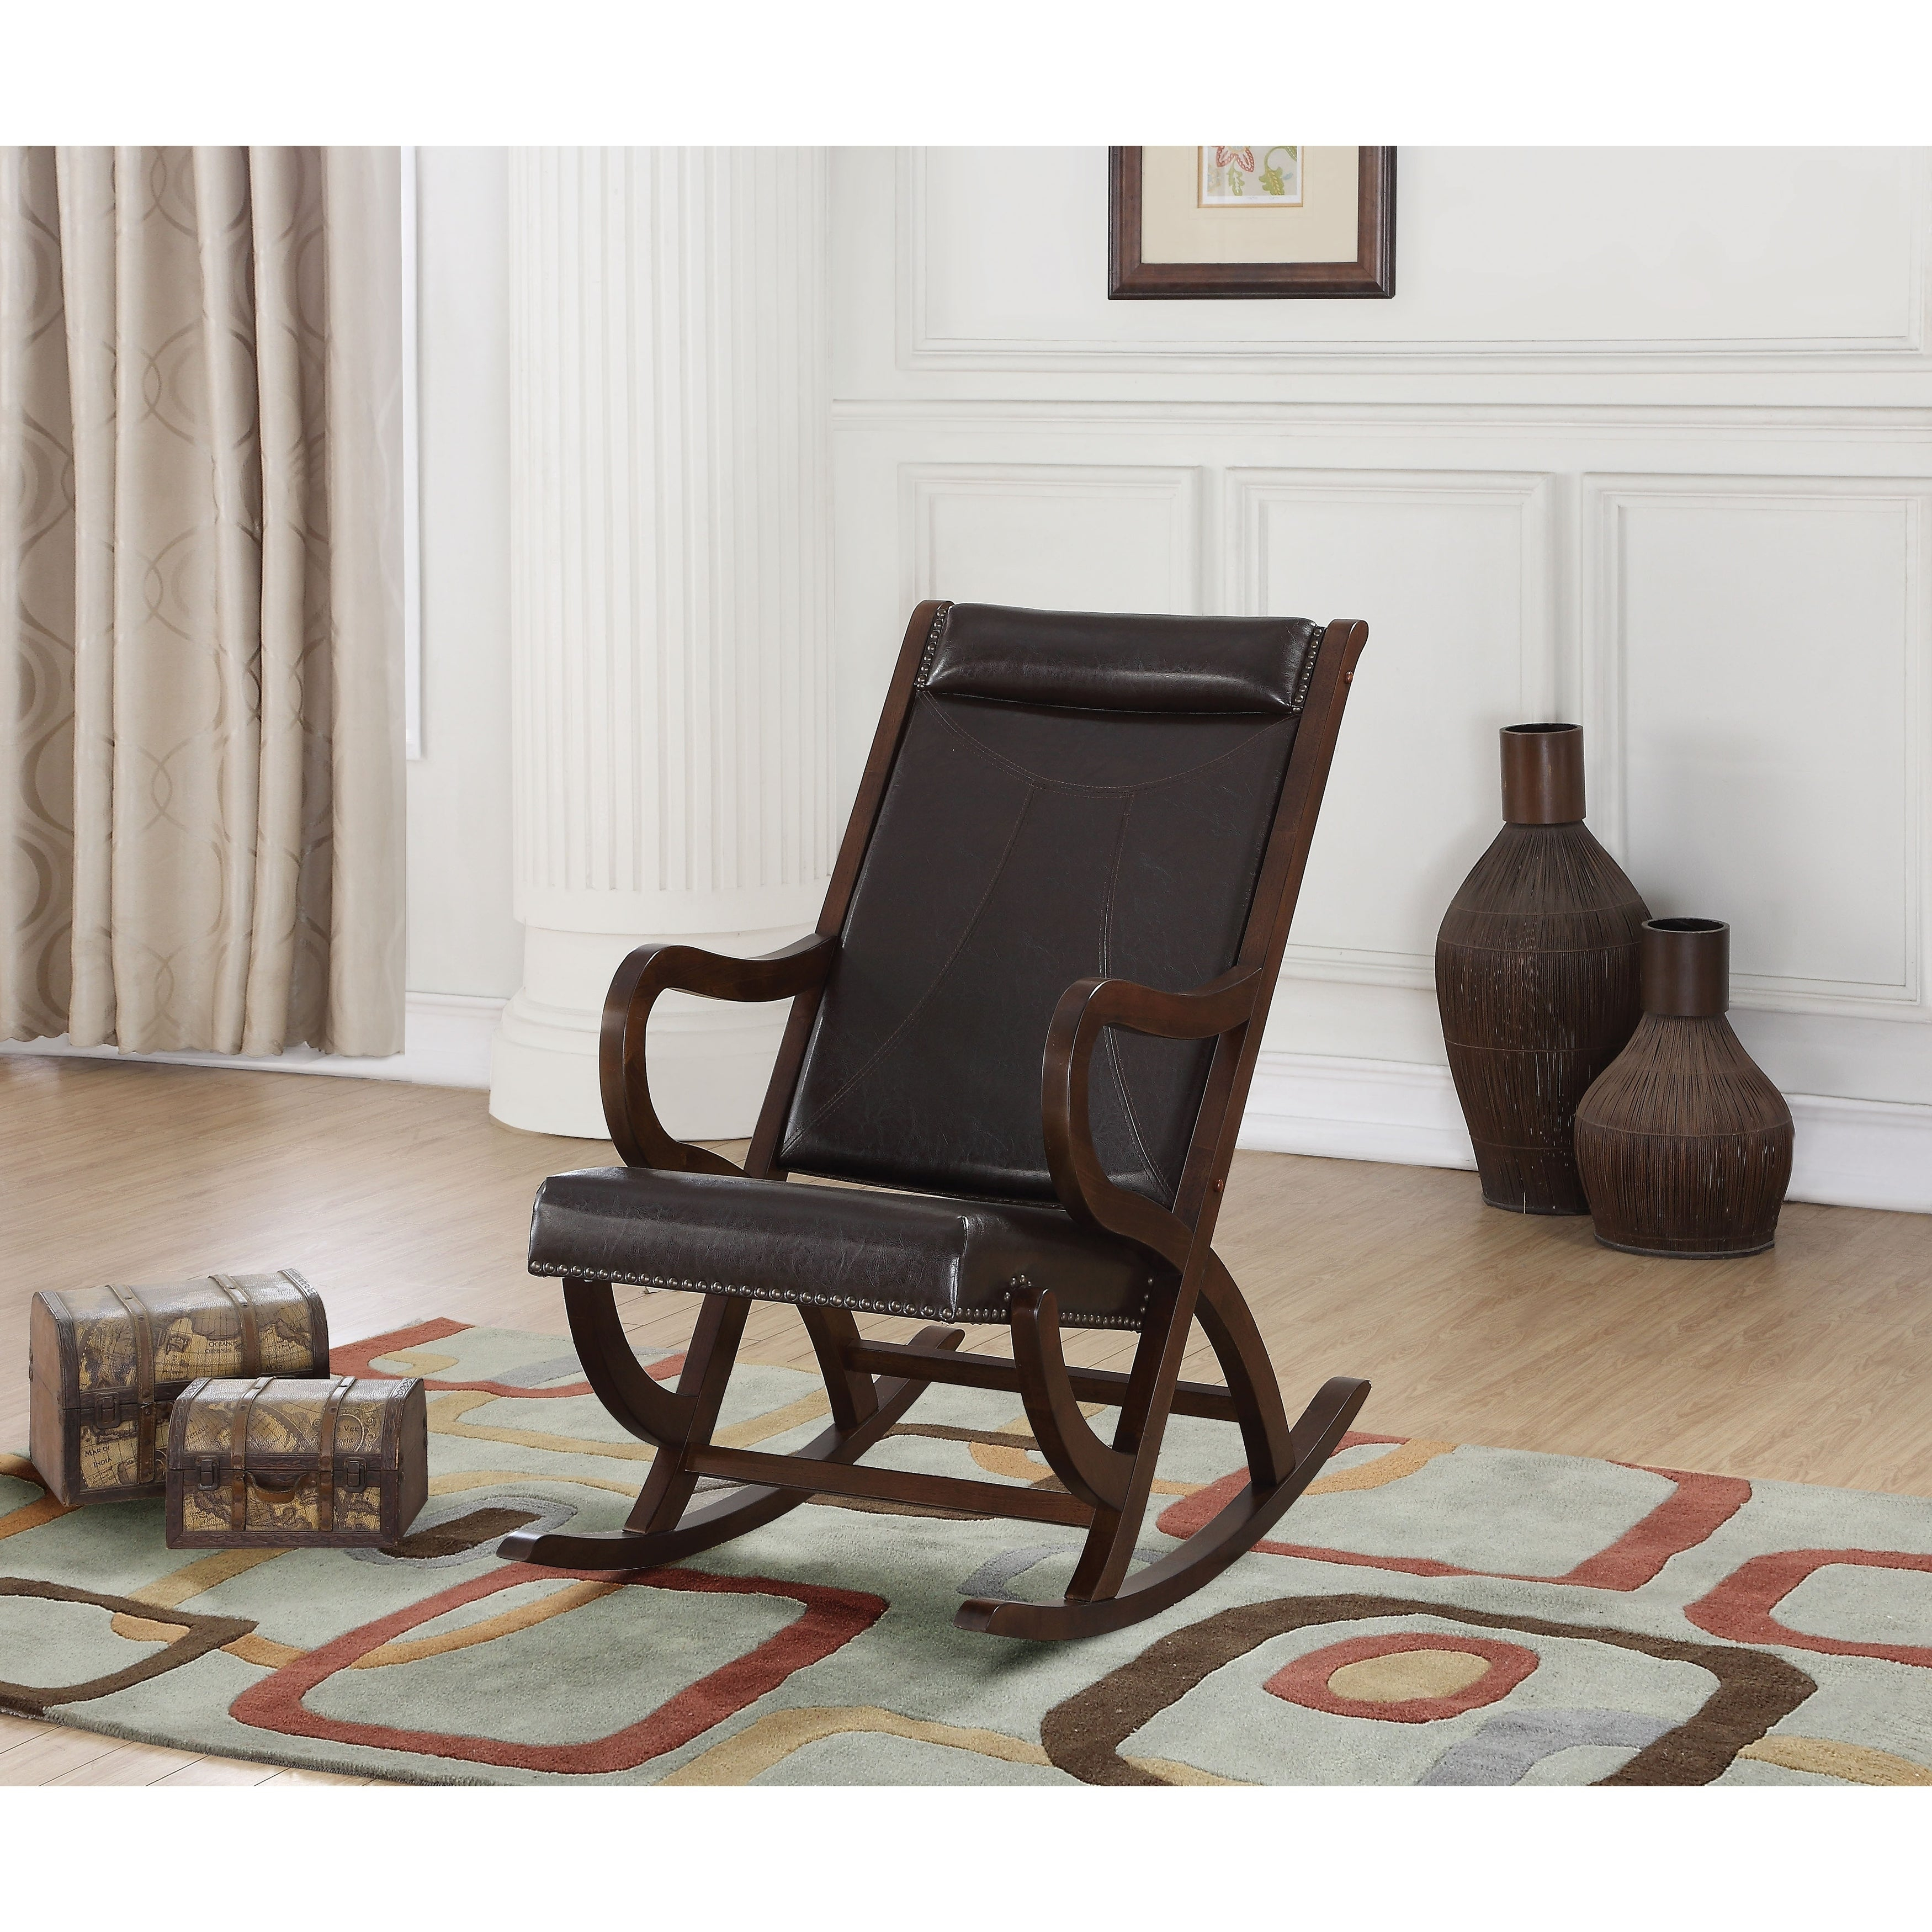 Faux Leather Upholstered Wooden Rocking Chair With Looped Arms, Brown Inside Faux Leather Upholstered Wooden Rocking Chairs With Looped Arms, Brown (View 6 of 20)